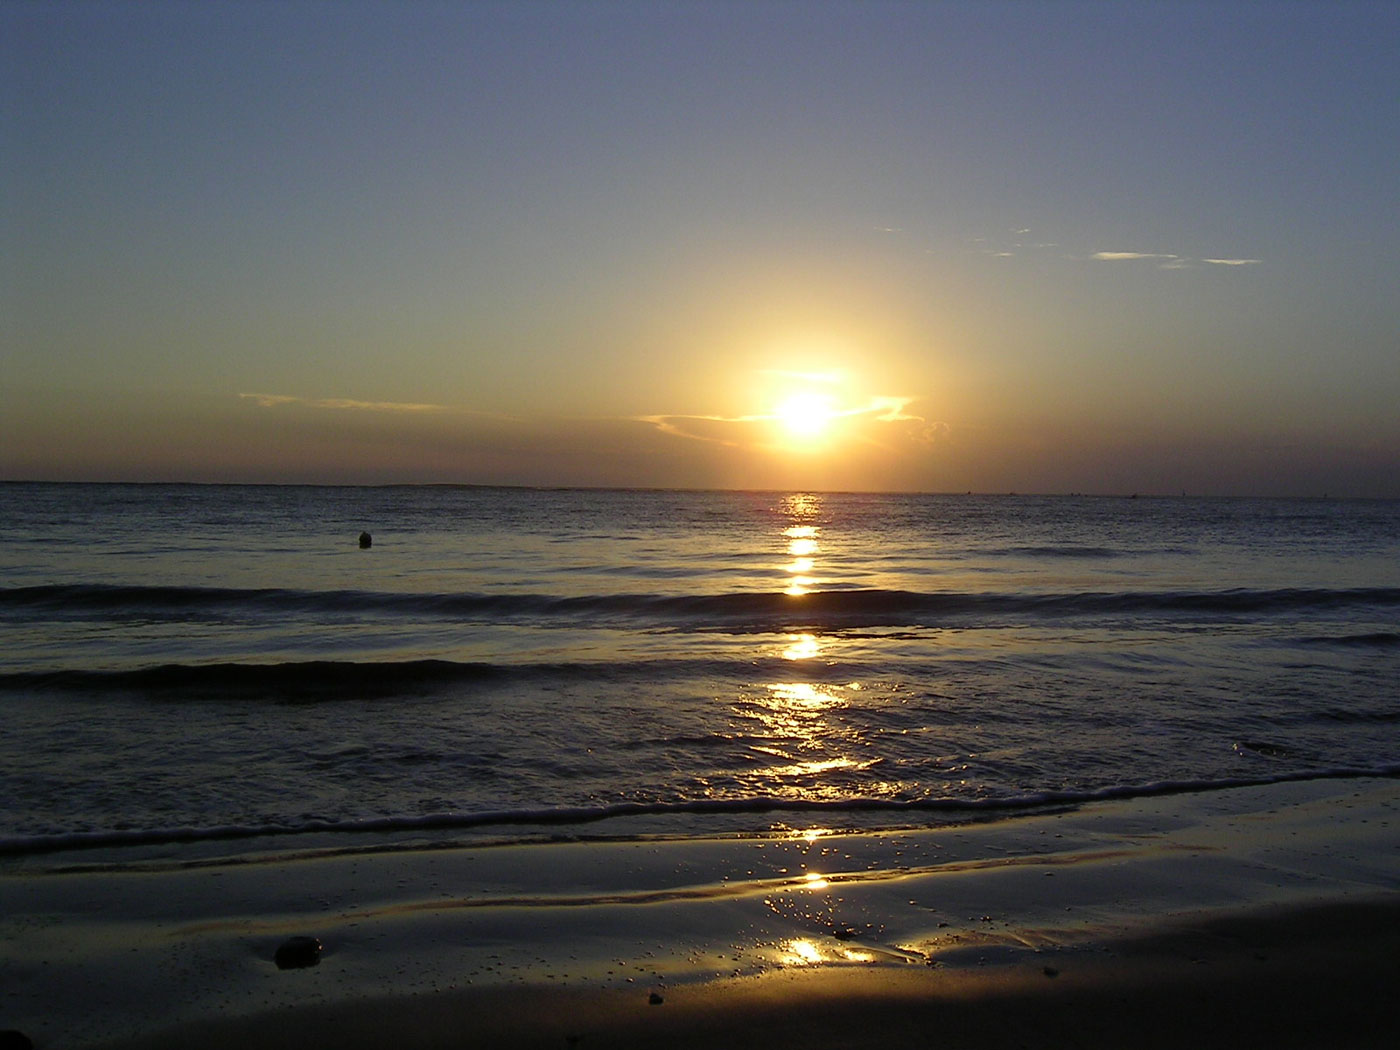 File:SunsetatSea.jpg  Wikipedia, the free encyclopedia